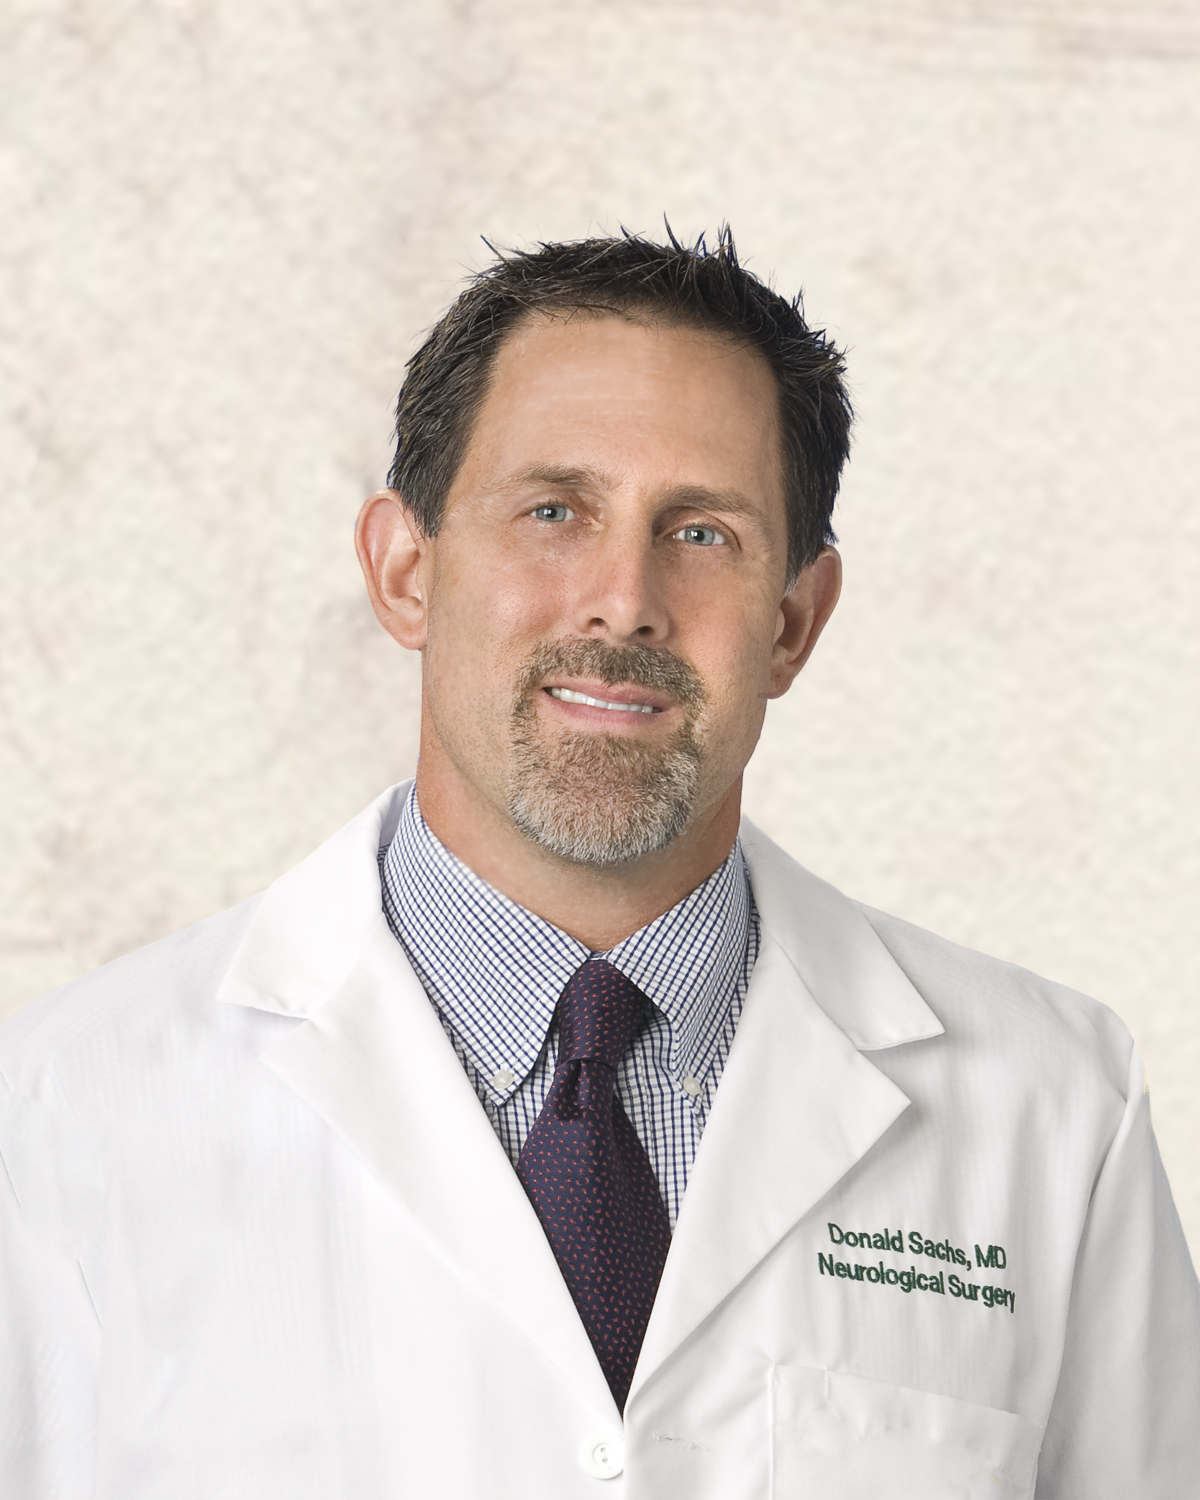 Dr. Donald Sachs, MD